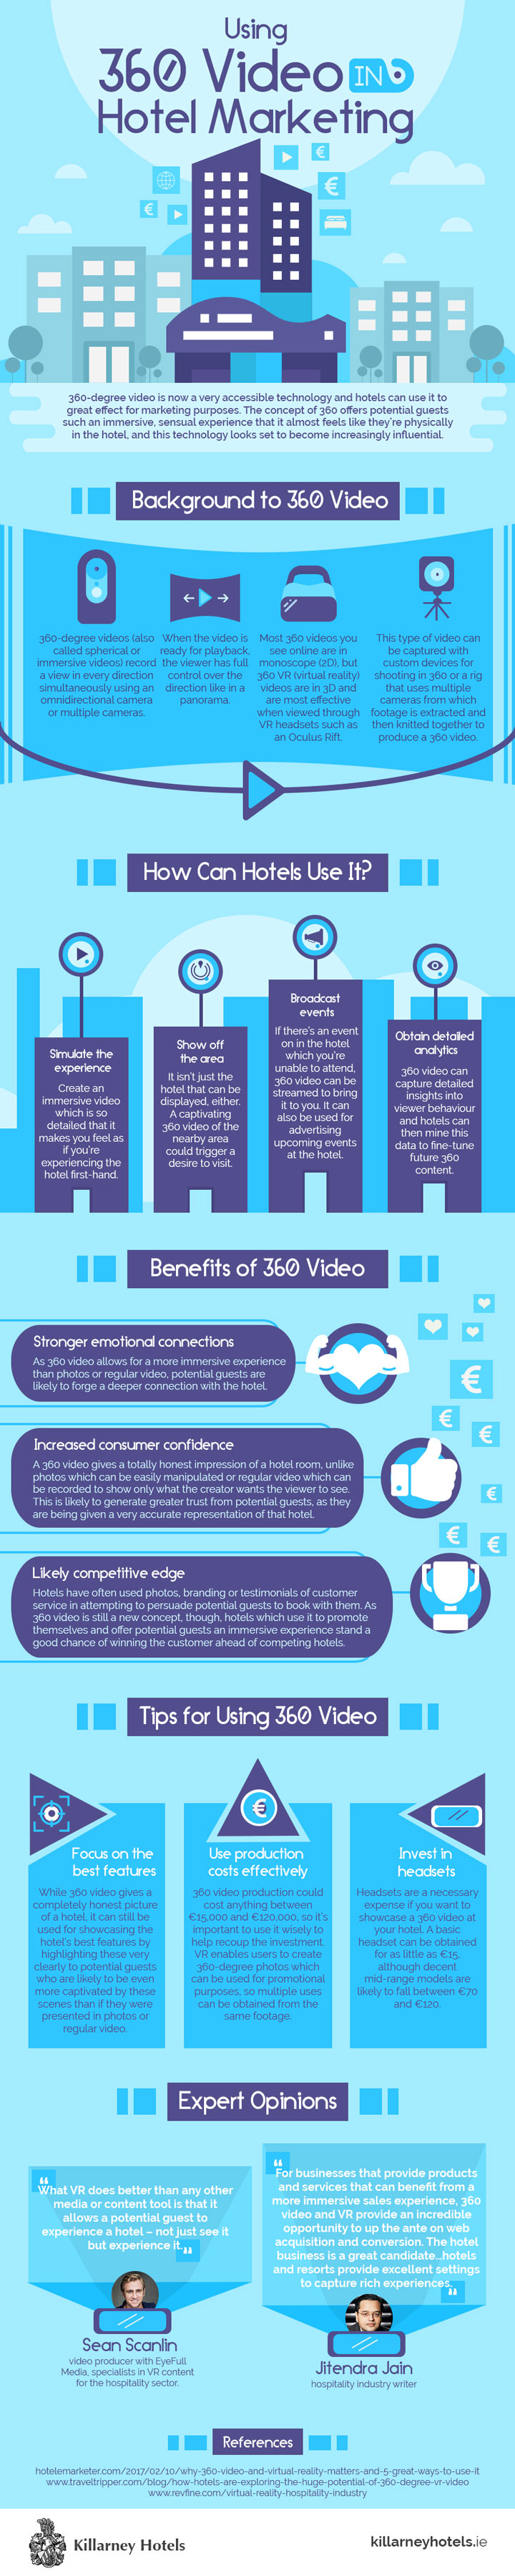 Tips on How to Use 360 Video